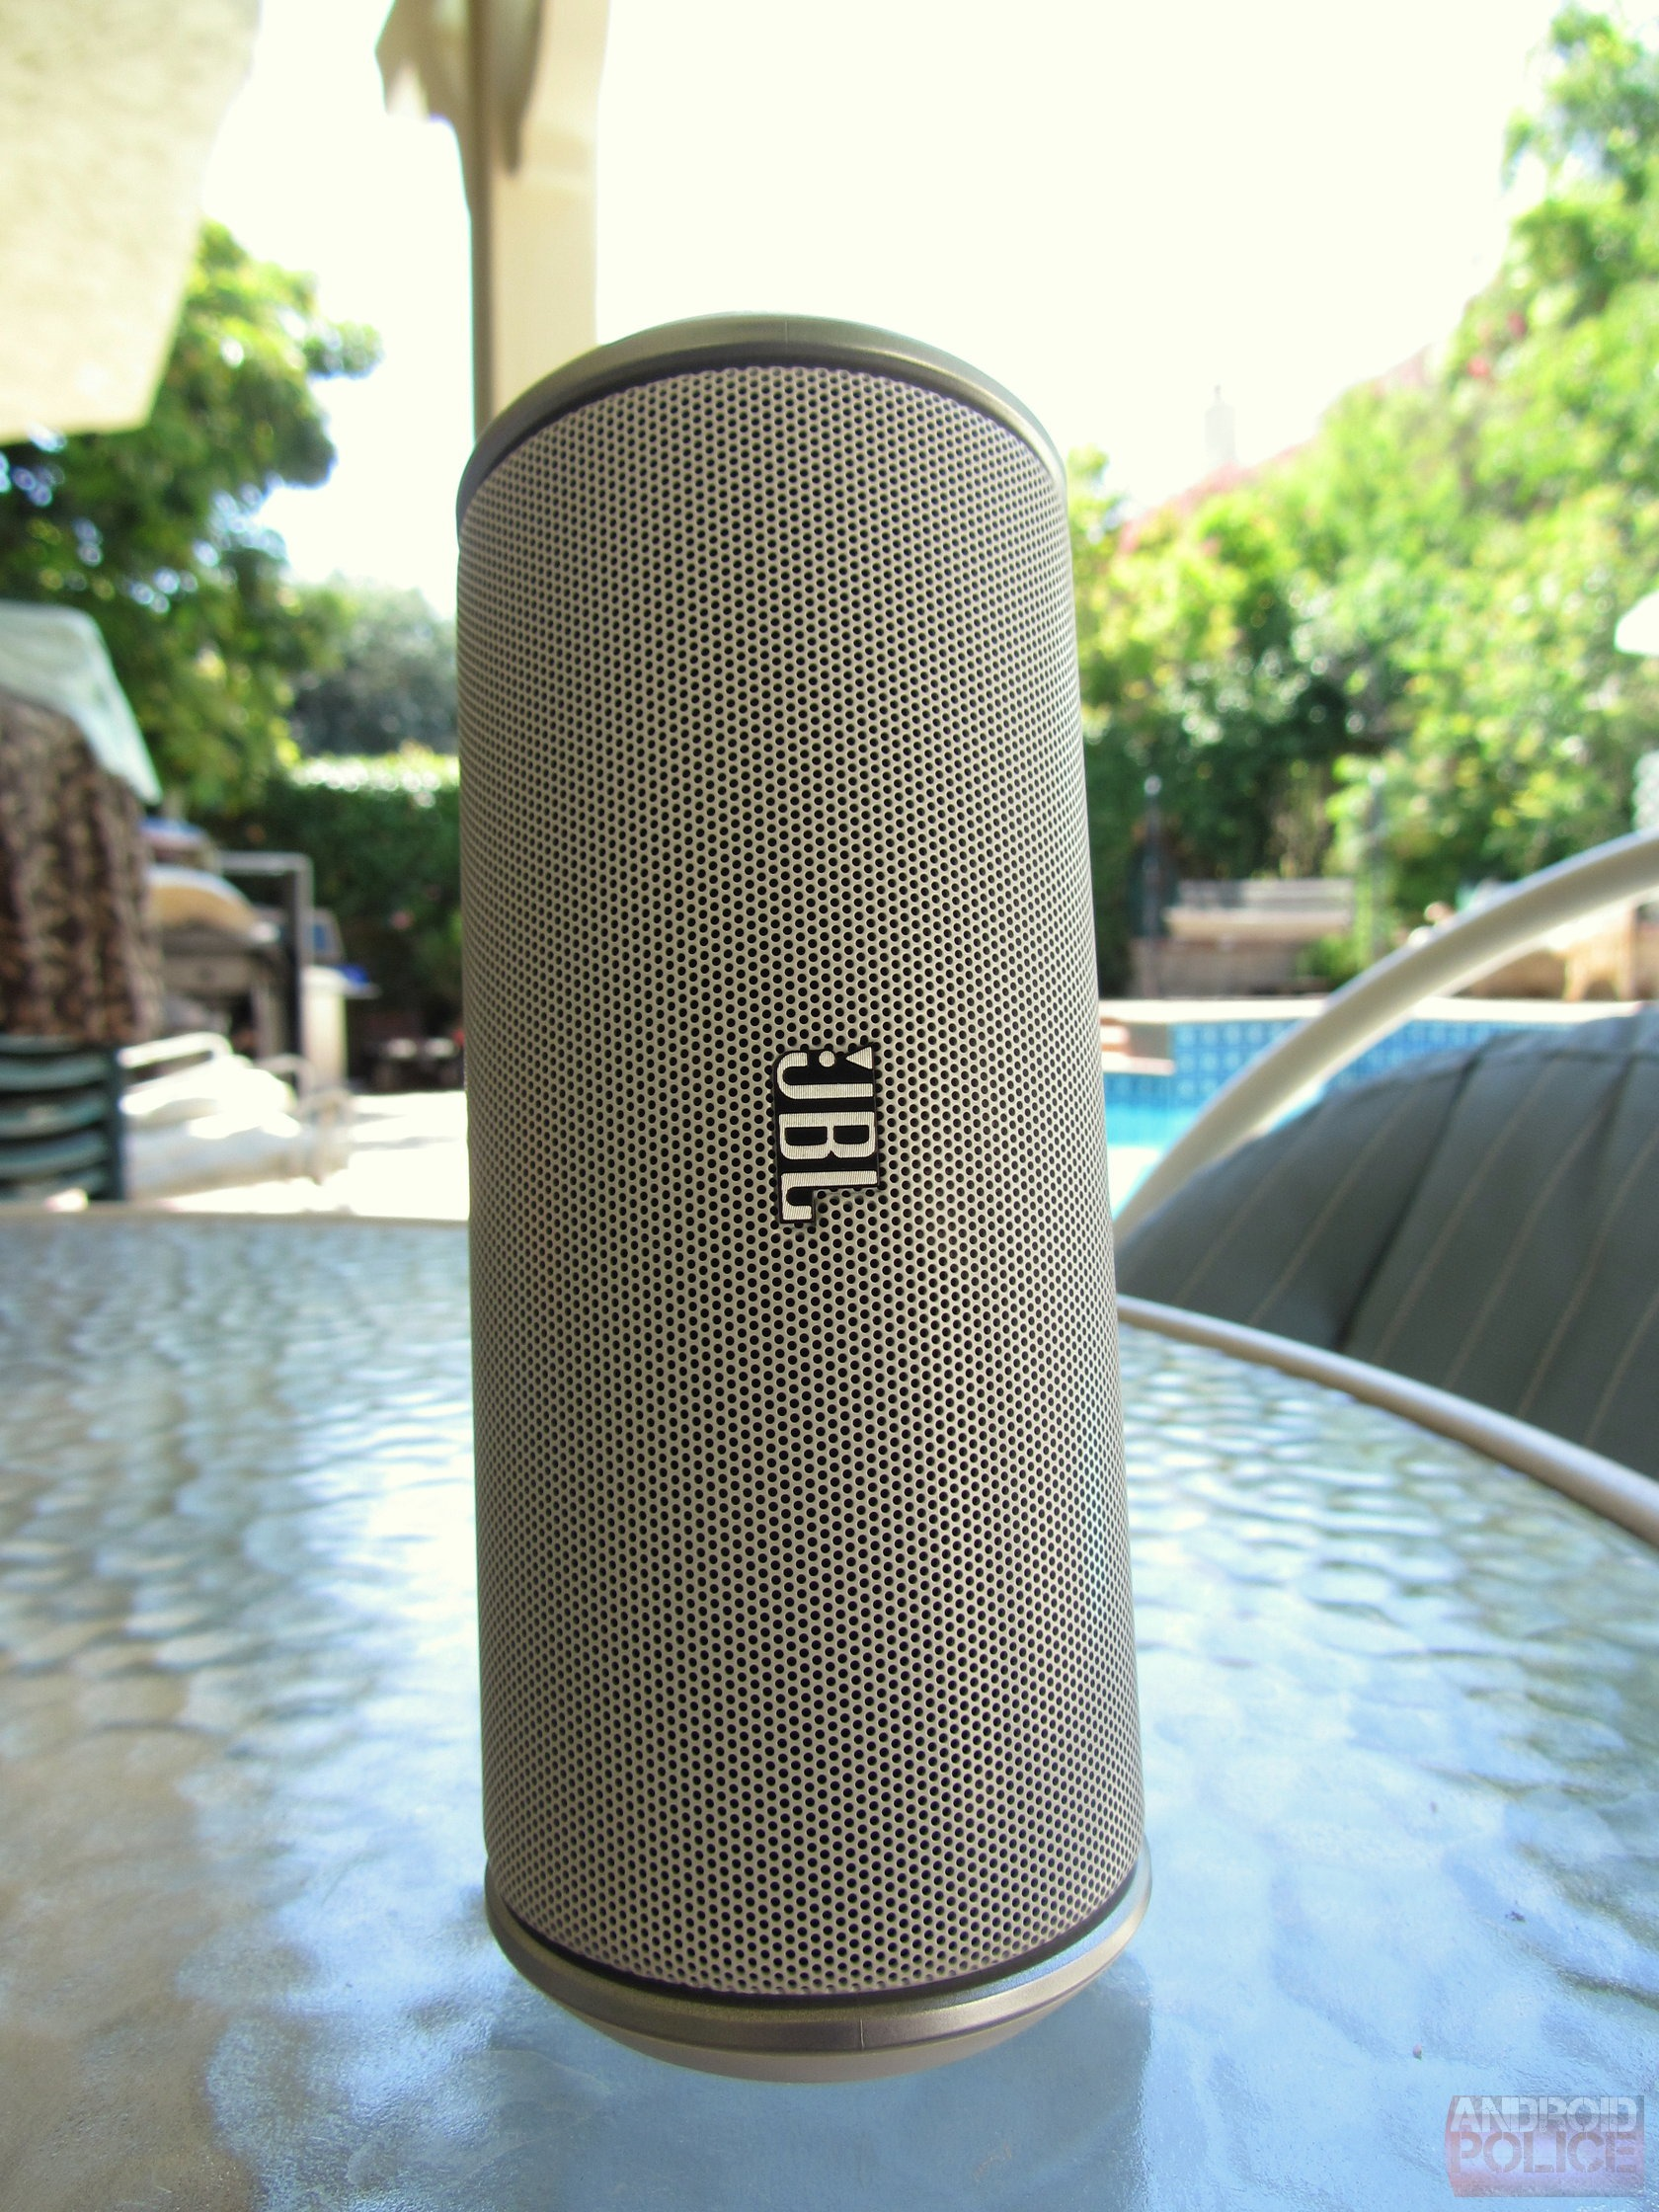 JBL Flip Bluetooth Speaker Quick Review: This May Be The Best Portable BT Speaker On The Market